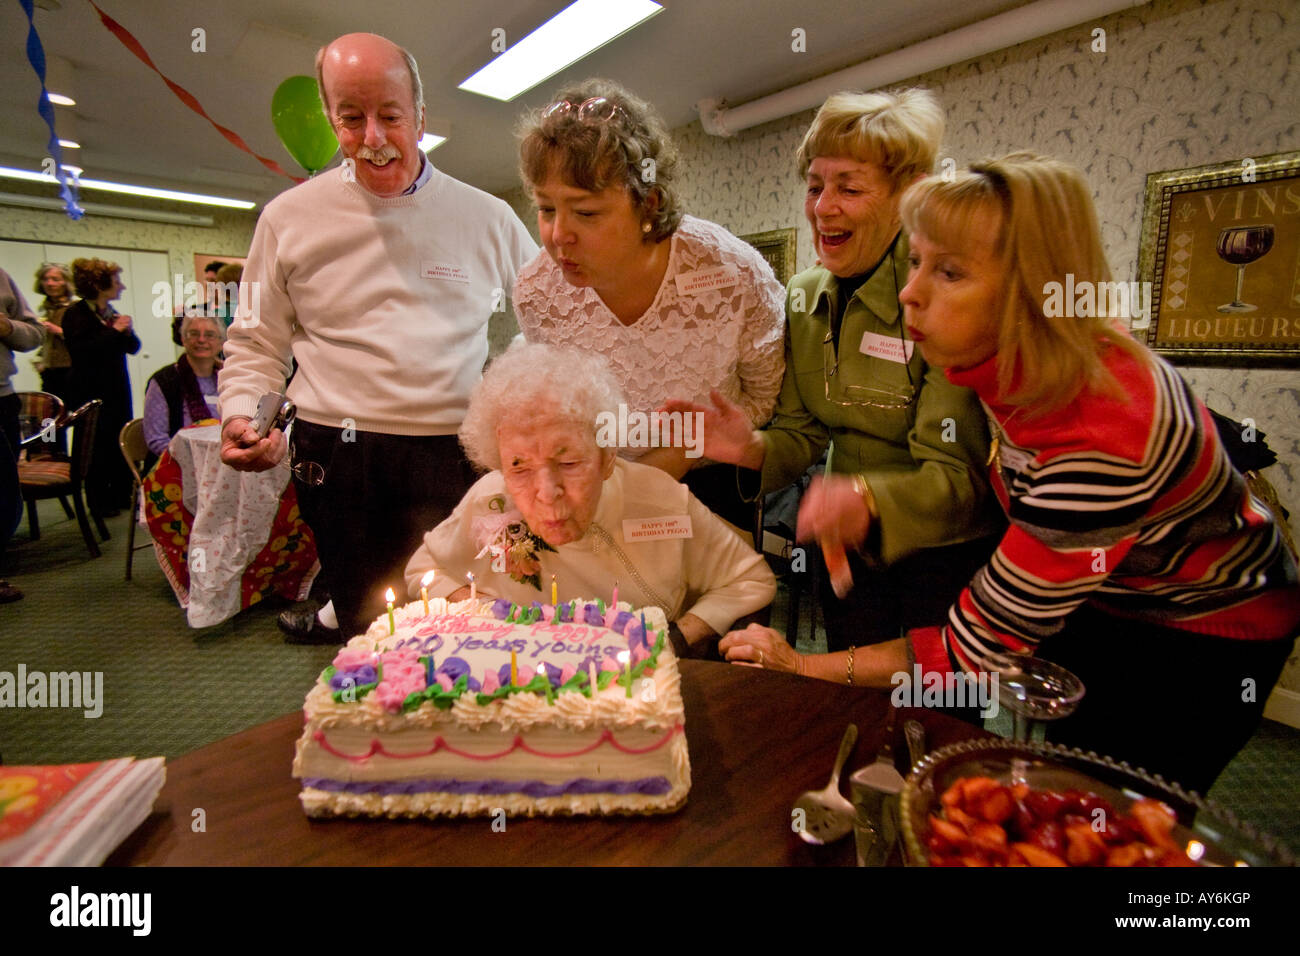 Cake Candles 80 Photos Cake Candles 80 Images Alamy